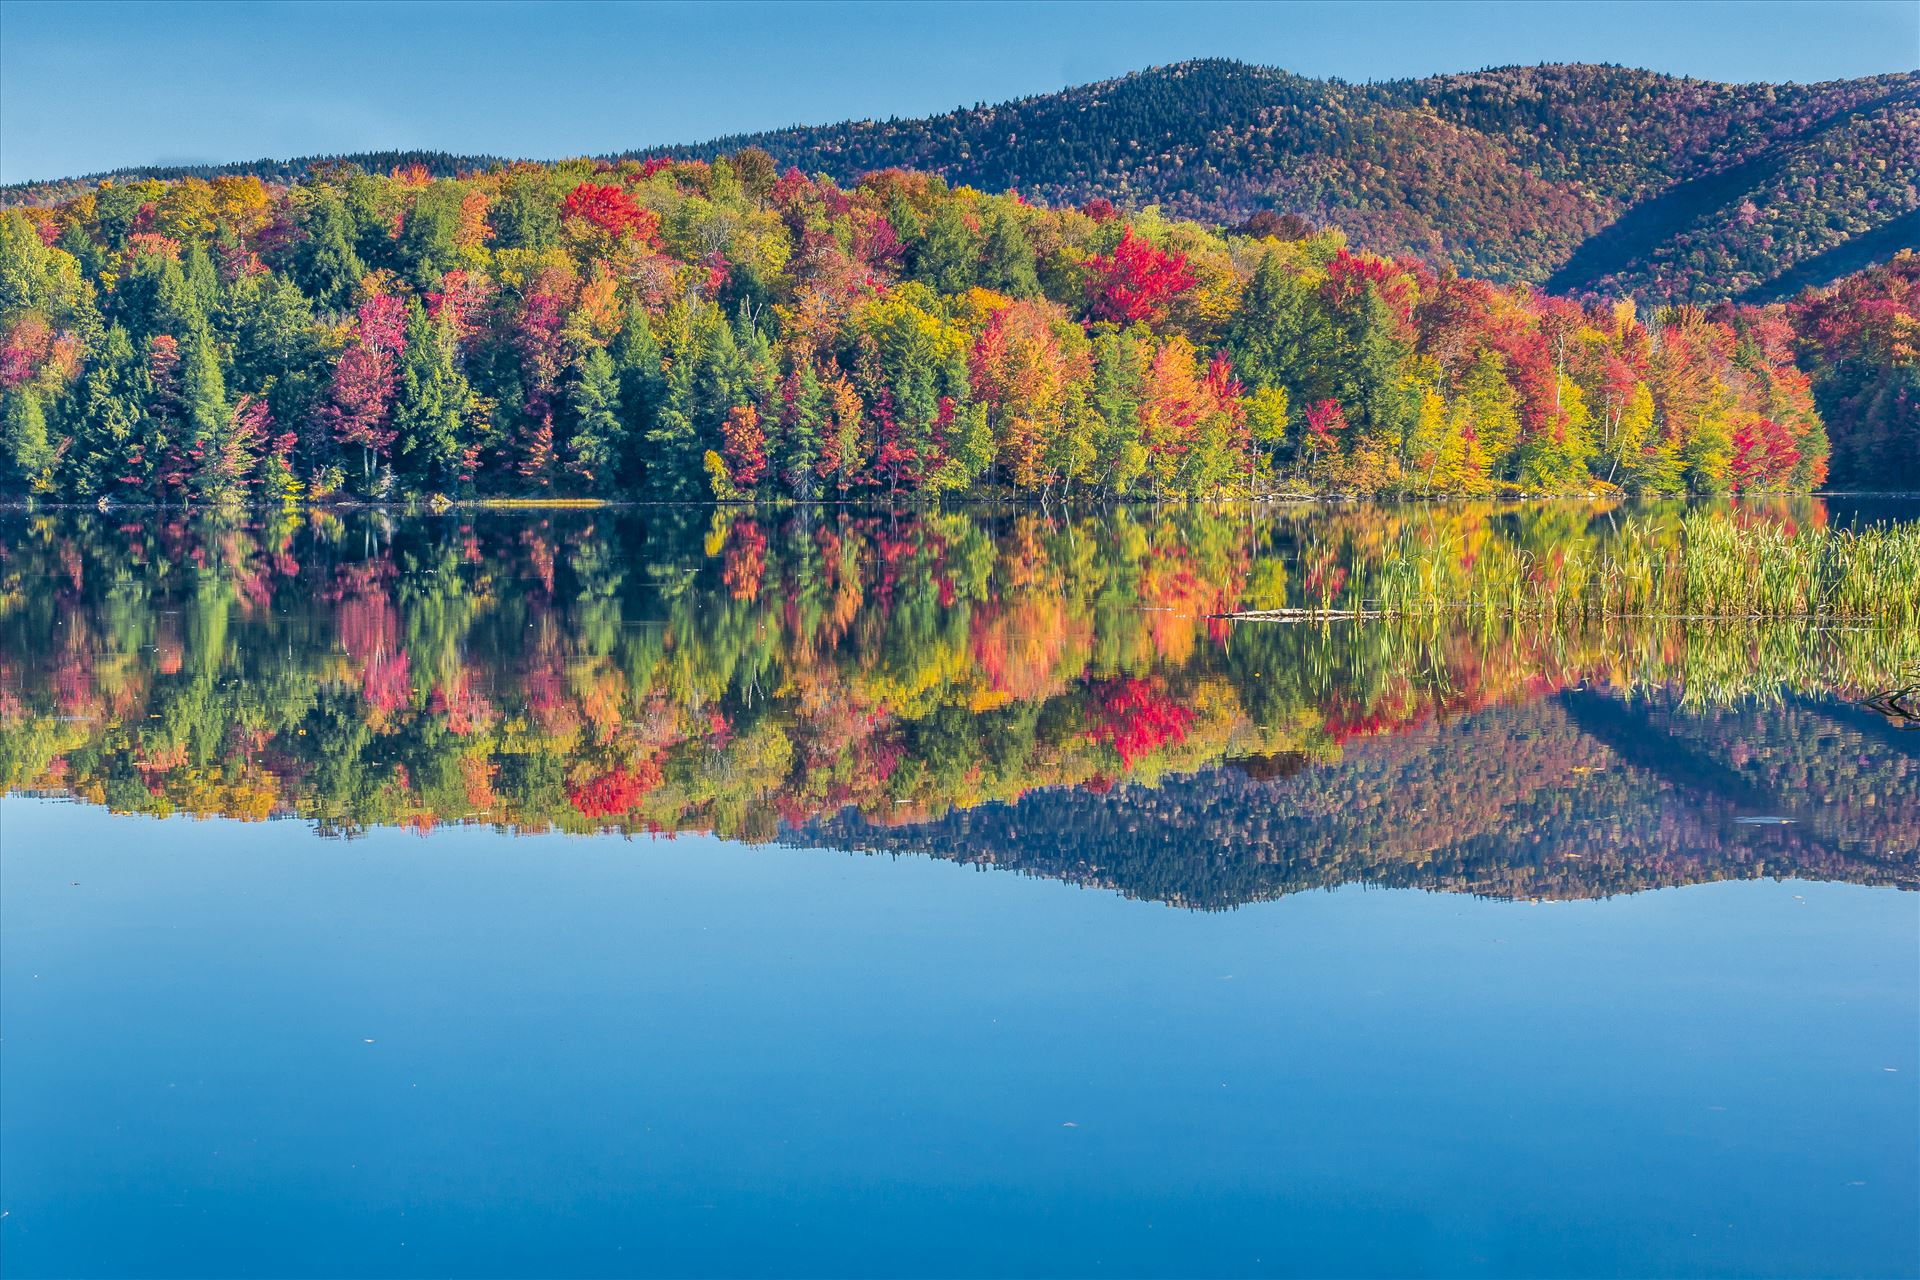 Vermont Fall Foliage - Vermont Lake in Beautiful Fall Colors by Buckmaster